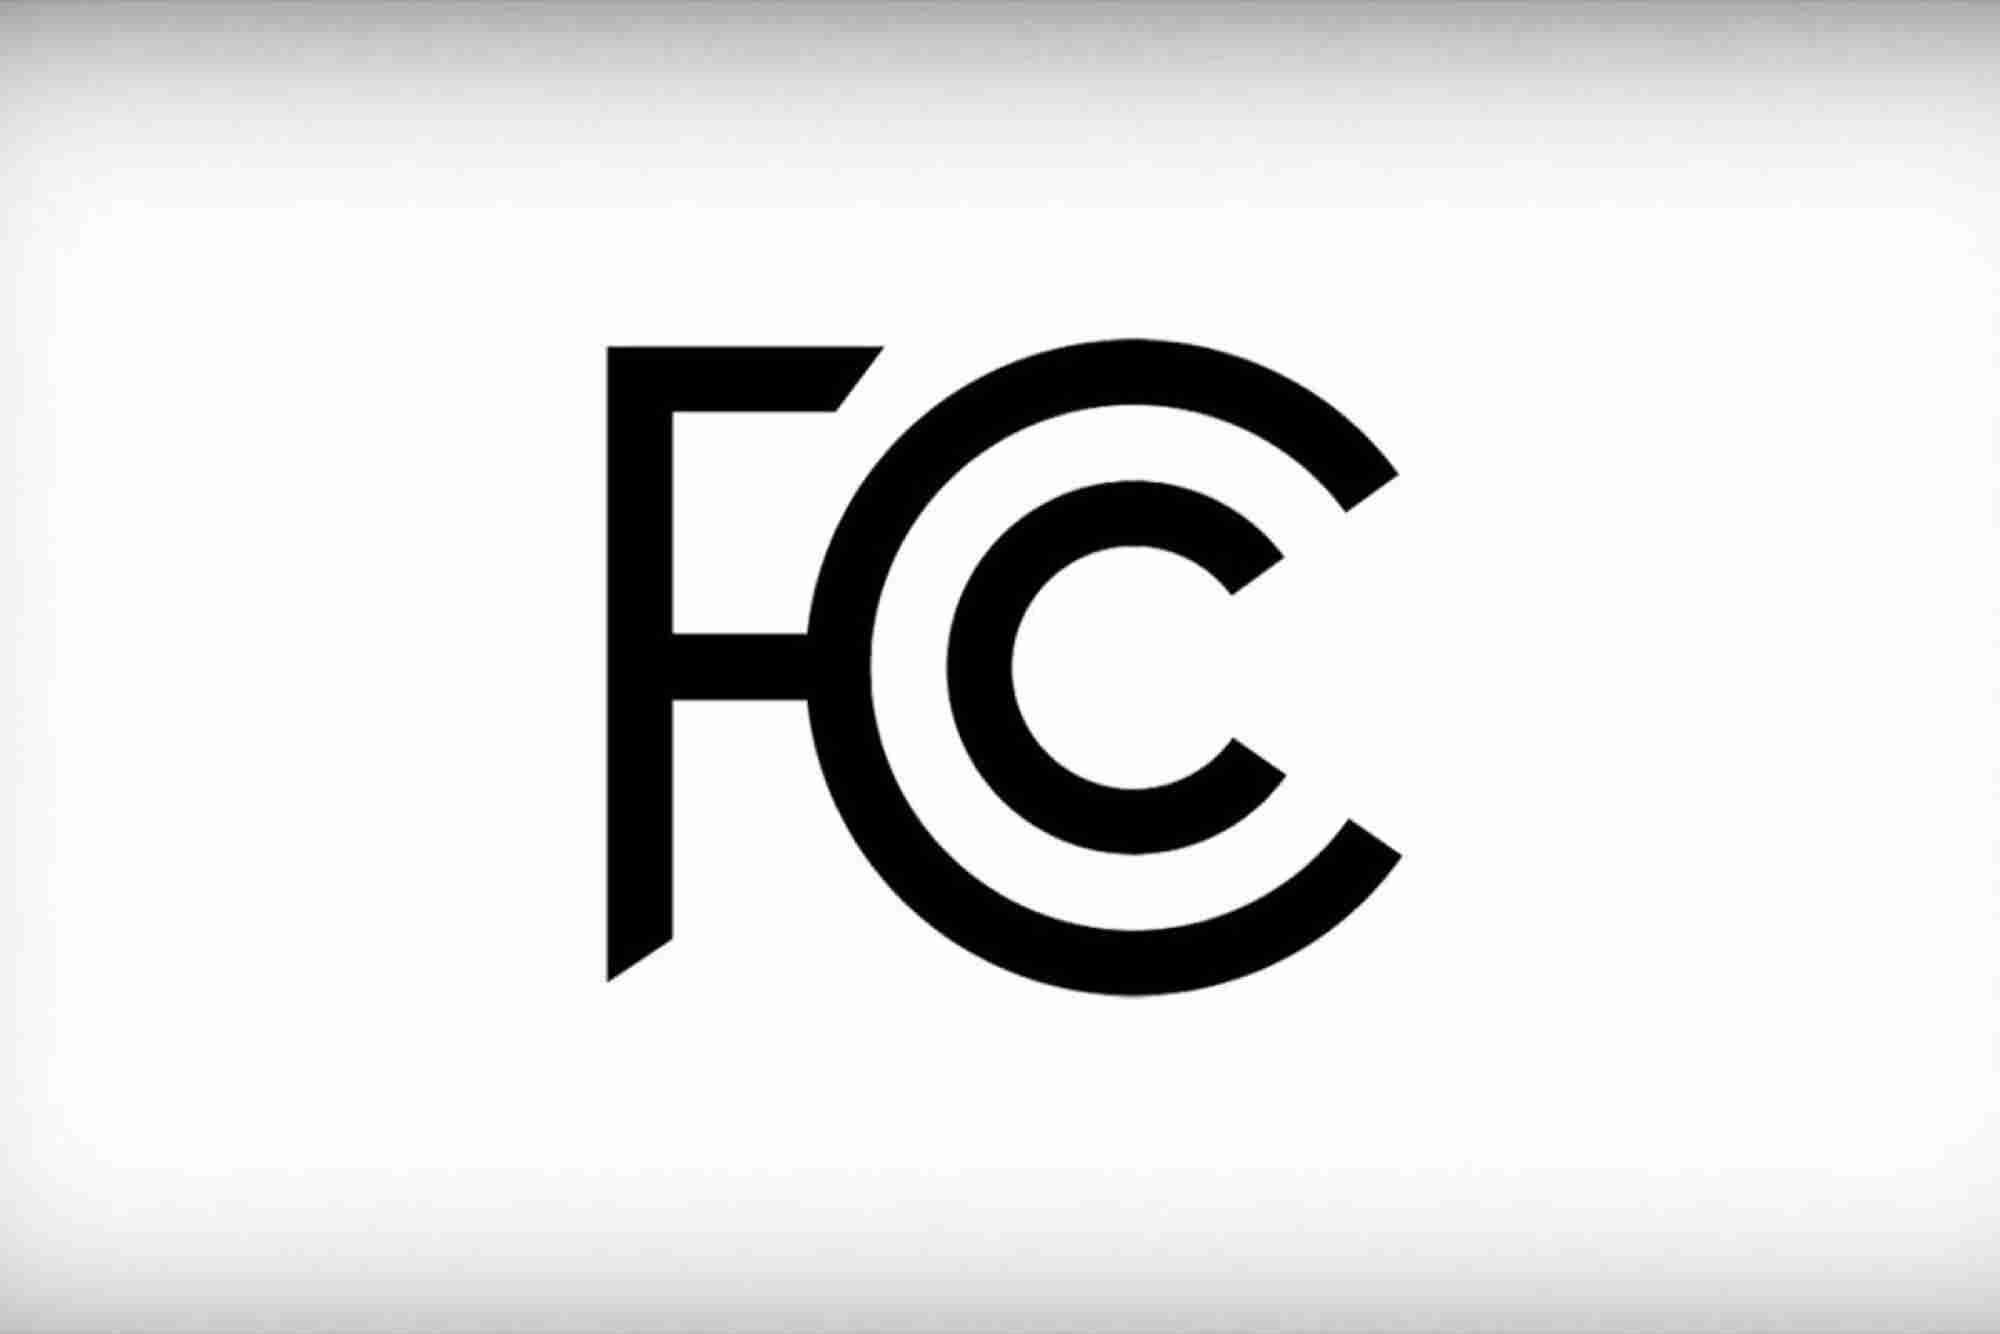 With the FCC Considering a Hybrid Approach to Net Neutrality, Will Anyone Be Satisfied?